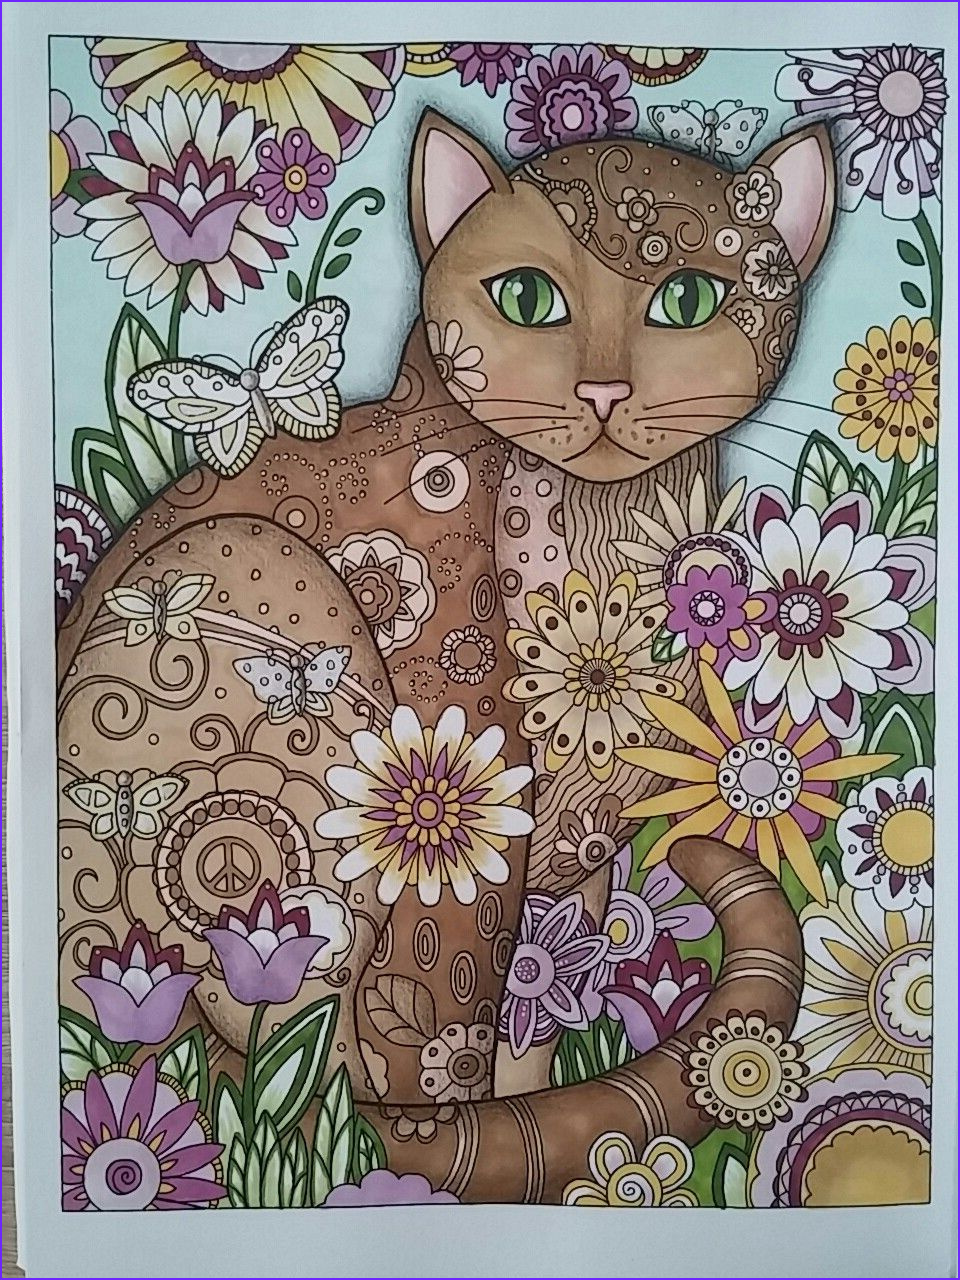 Best Adult Coloring Markers Best Of Photos Creative Cats 1 for the Best Adult Coloring Books and